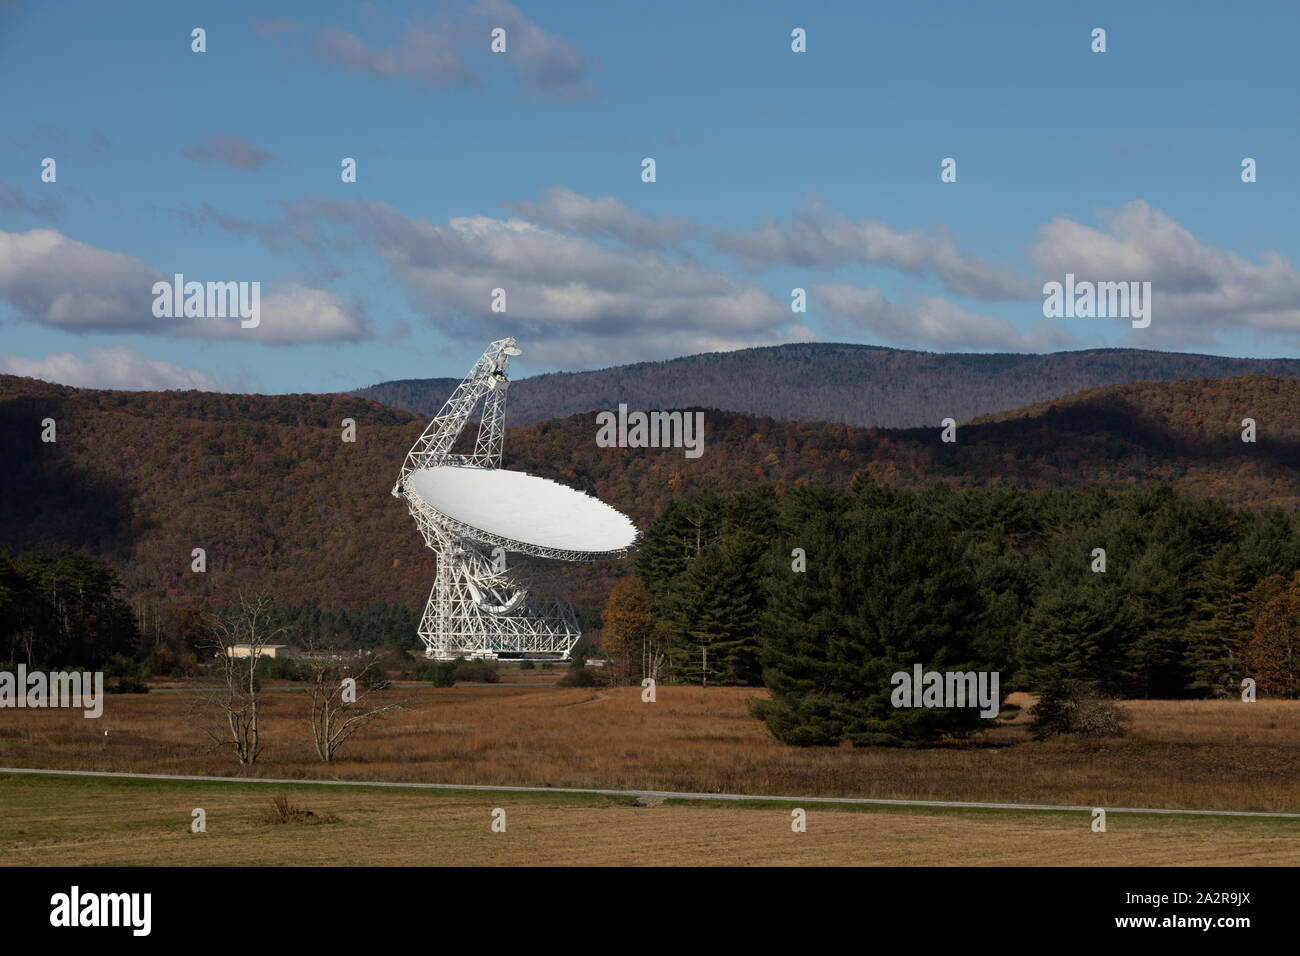 Radio telescope at the National Radio Astronomy Observatory in Green Bank, West Virginia Stock Photo